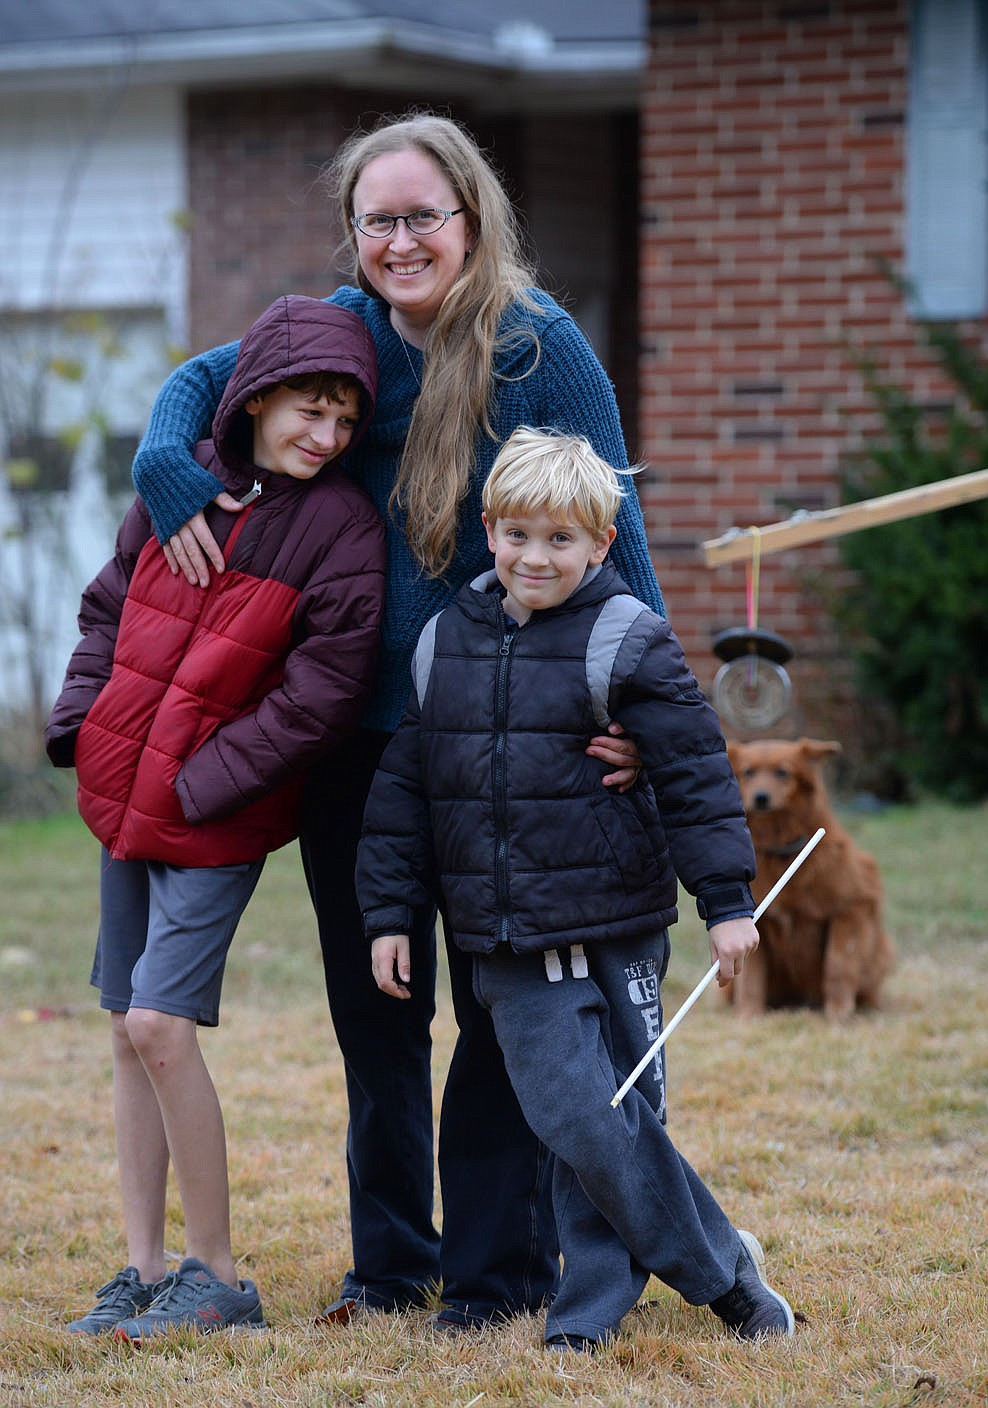 Roslyn Imrie smiles Wednesday as she is photographed with her sons Zane Eaton, 11, (left) and Elo Eaton, 7, outside their home in Fayetteville. The unique sort of instruction normally available ESL and alternative-learning students is difficult to replicate at home. Visit nwaonline.com/201129Daily/ for today's photo gallery.  (NWA Democrat-Gazette/Andy Shupe)